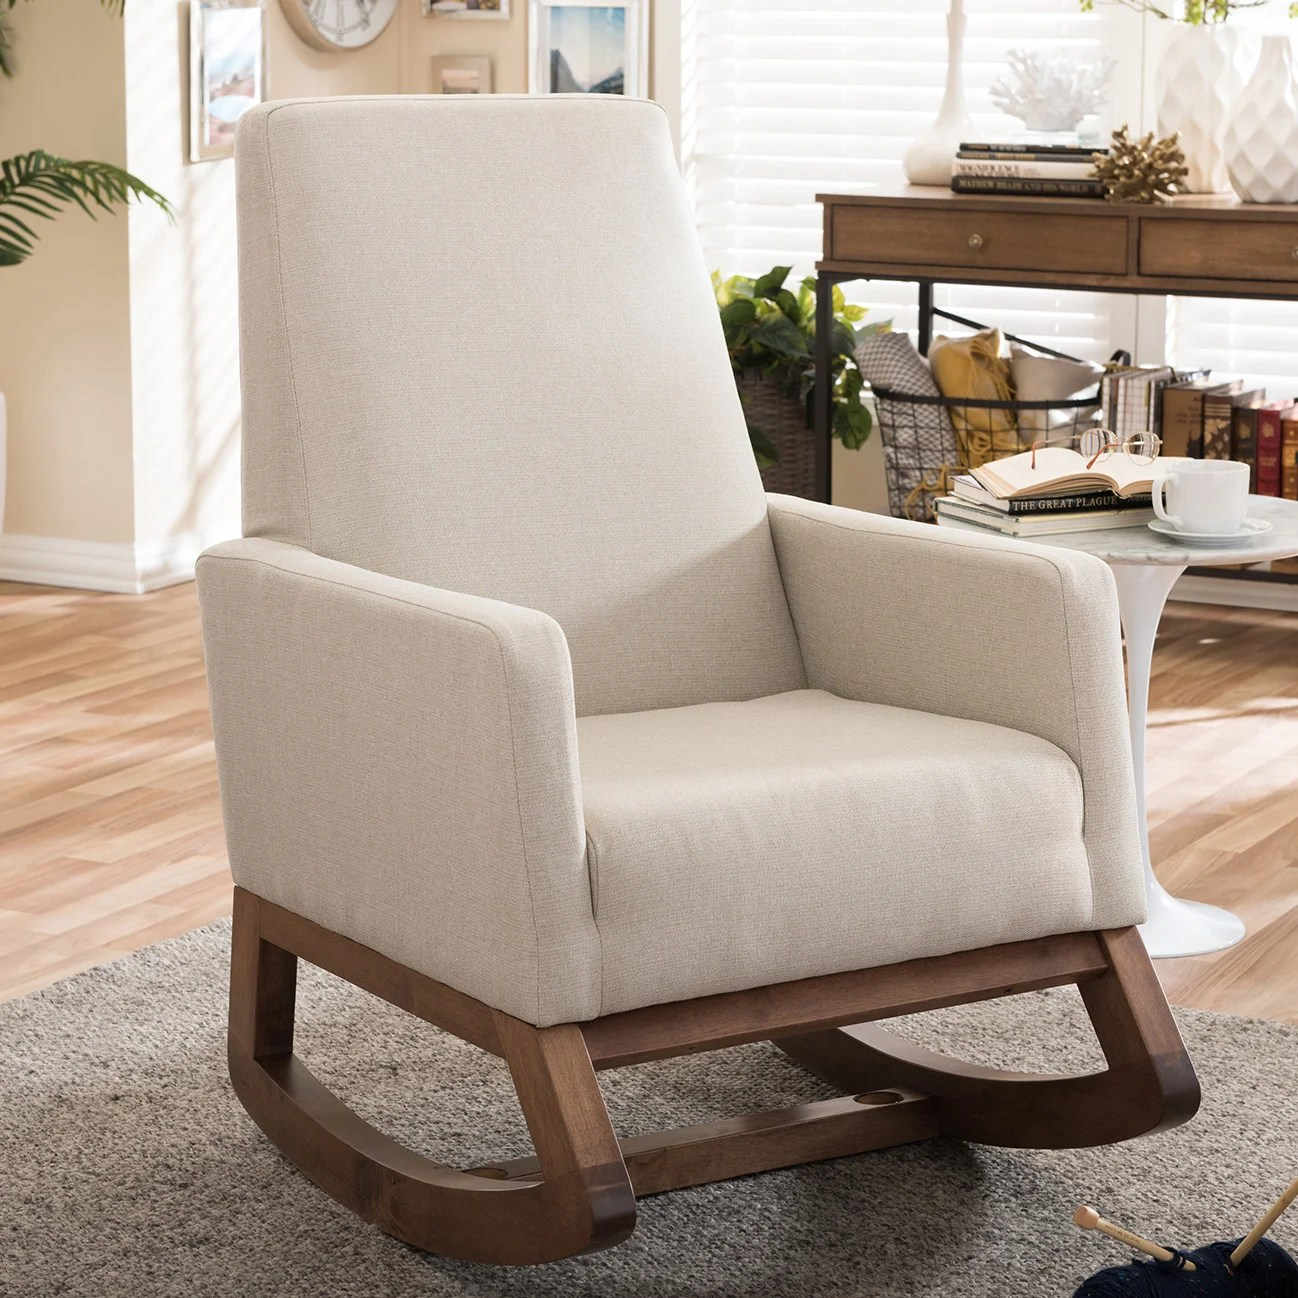 Rocking Chair Carson Carrington Honningsvag Mid Century Modern Light Beige Upholstered Rocking Chair